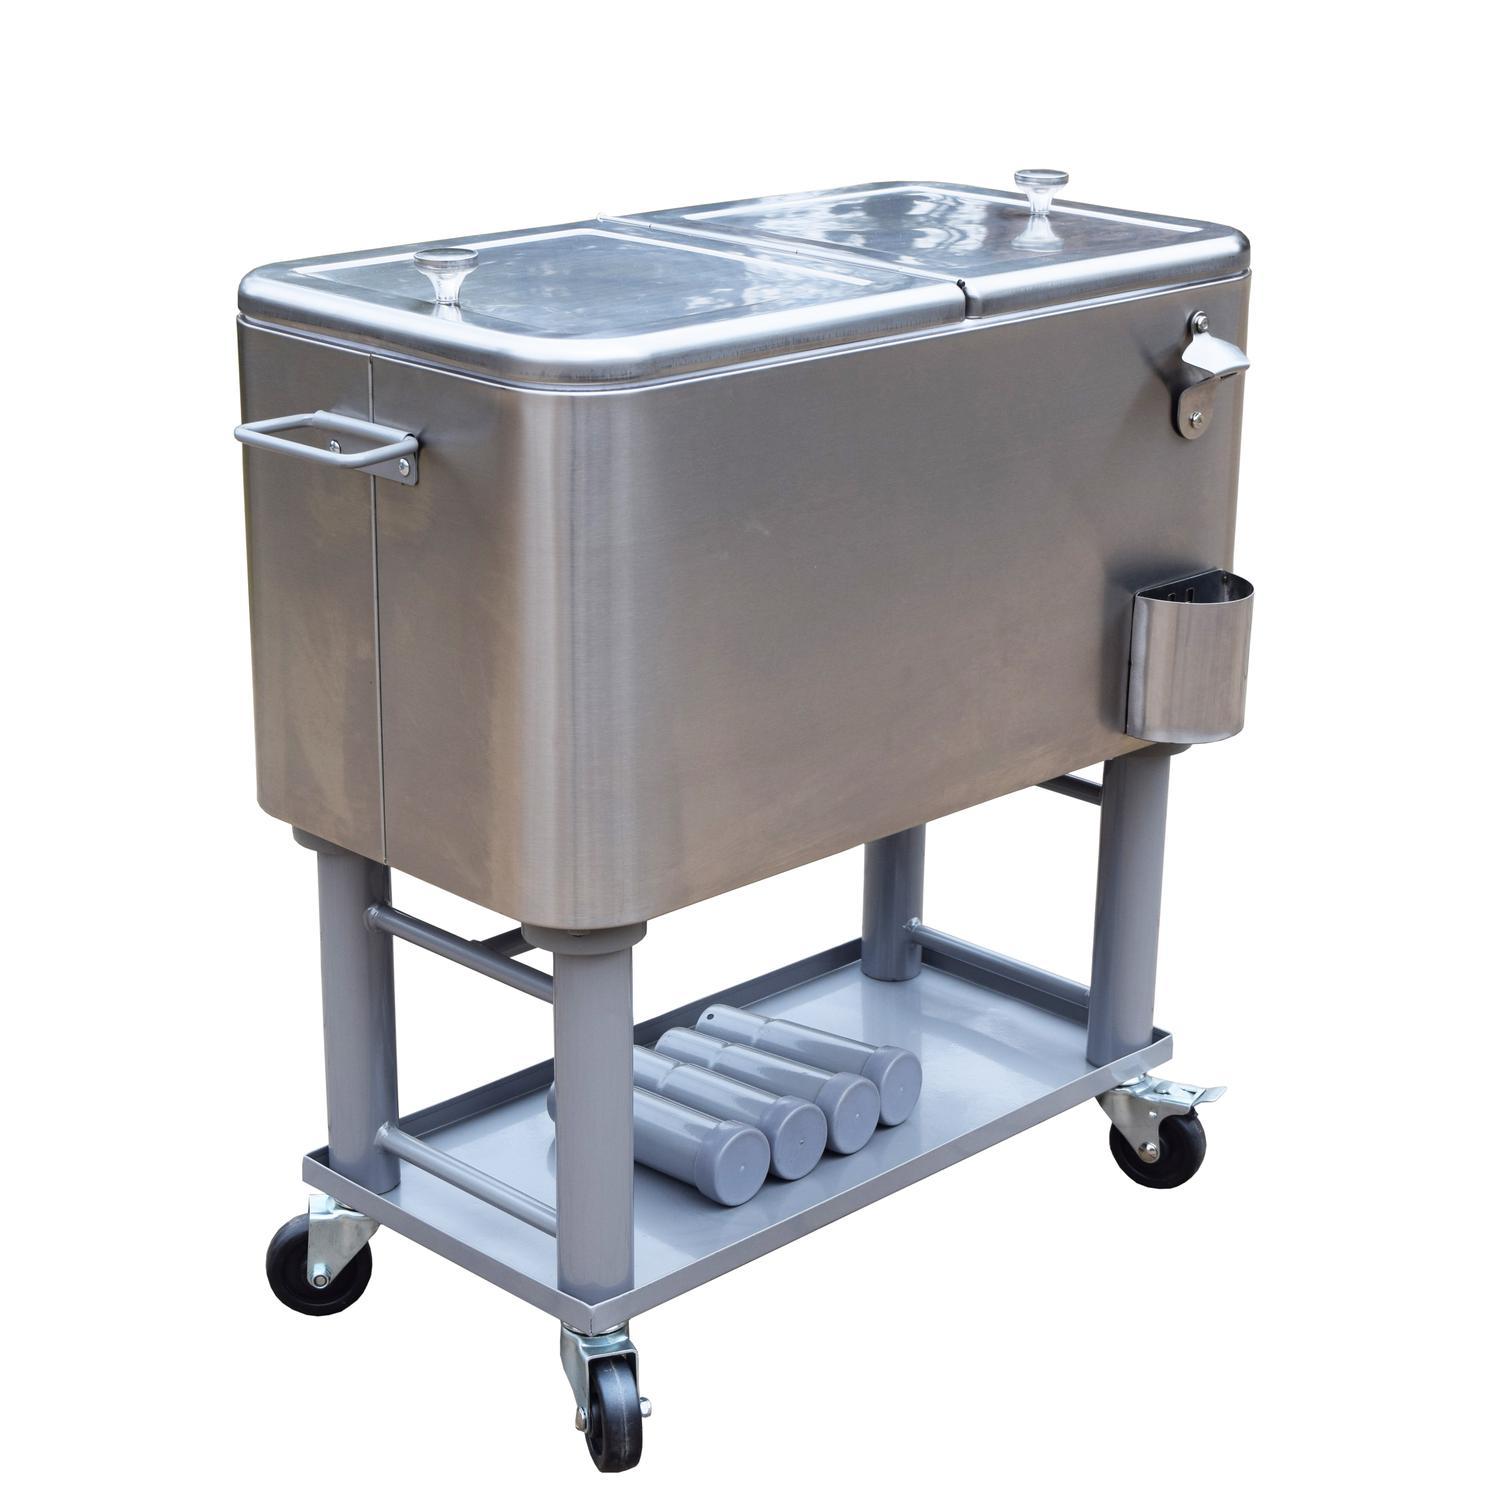 "34"" Silver Stainless Steel 15-Gallon Party Cooler Cart with Built in Bottle Opener"